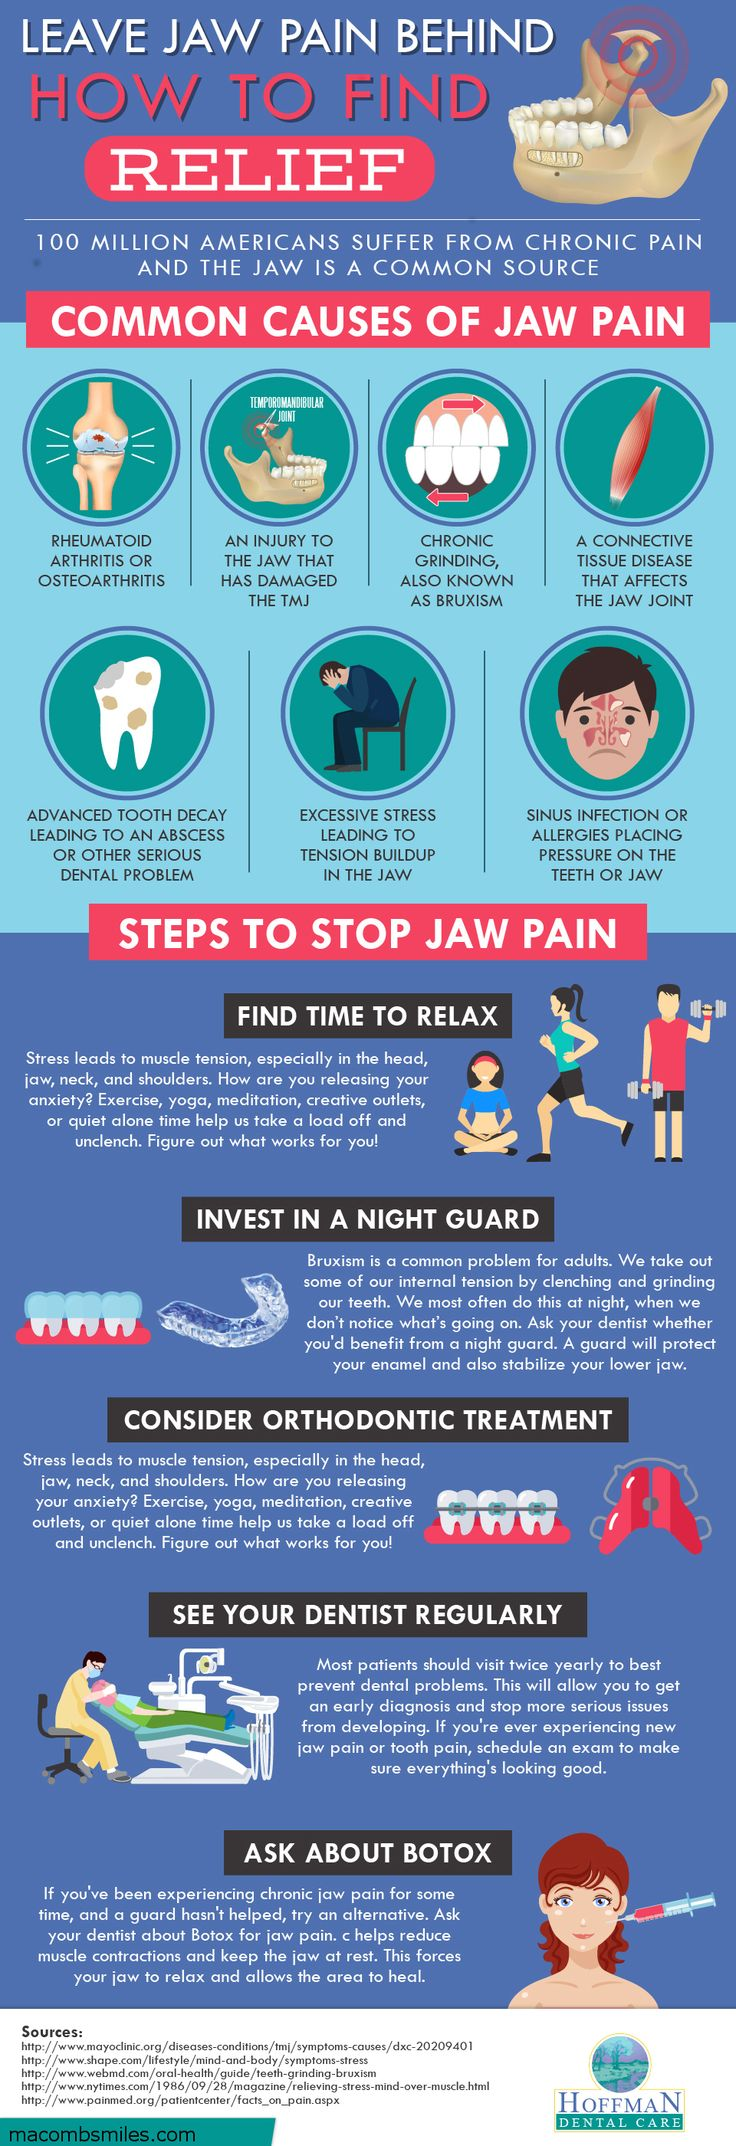 Is Your Jaw Pain Due to Cavities? When to Get Help #cavities #jaw #pain #TMJ #dentist